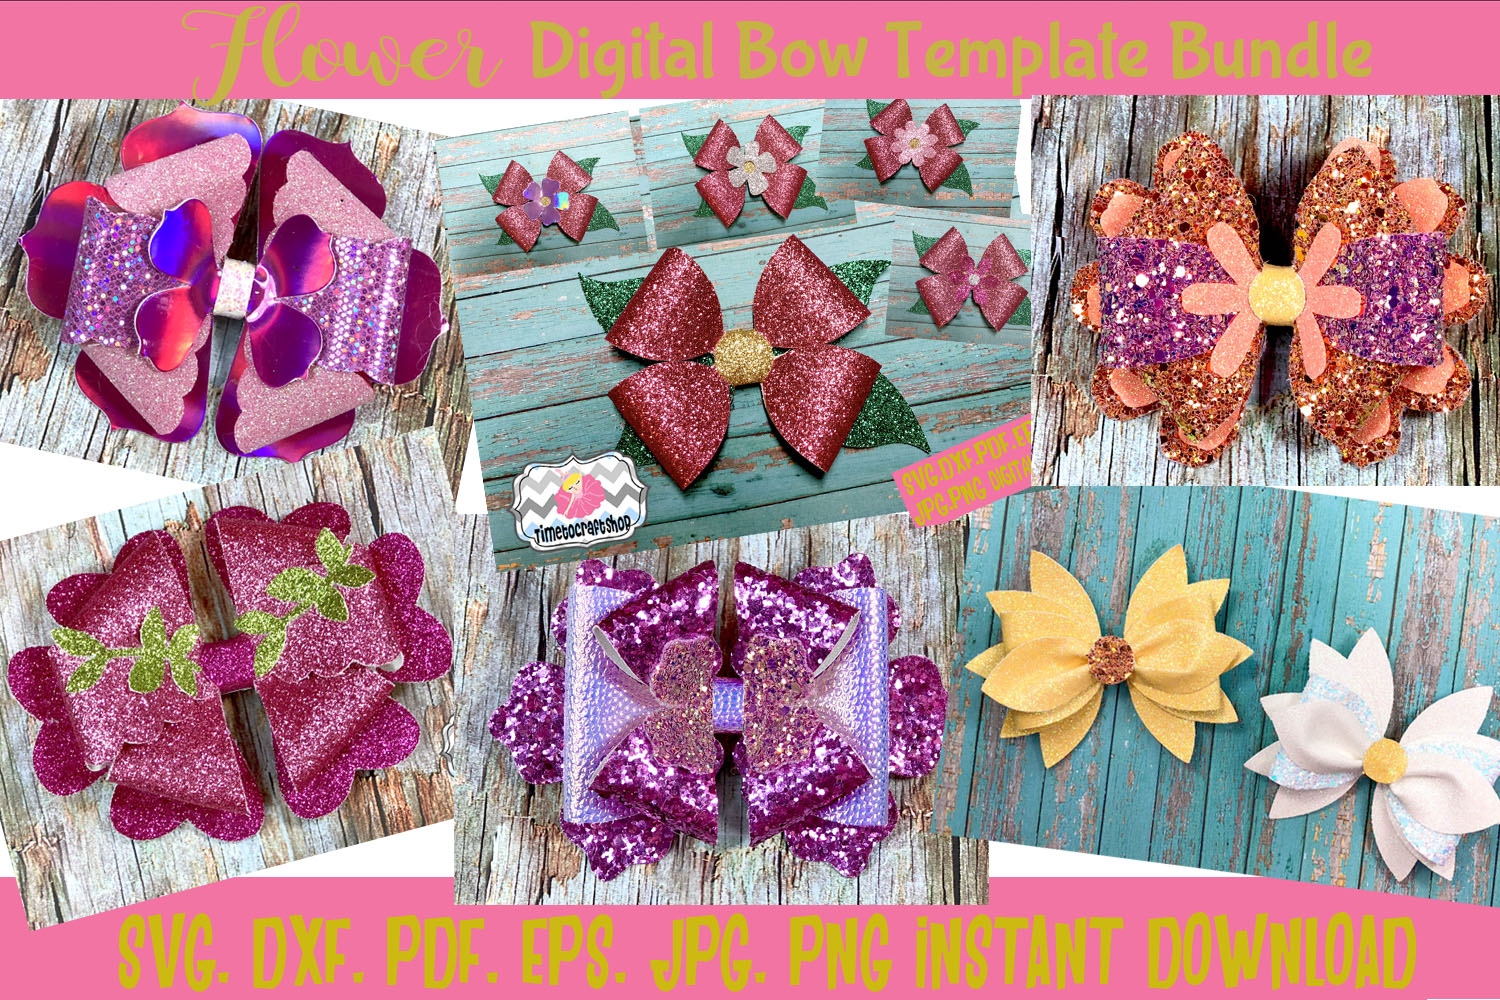 SVG, PNG, DXF, PDF, JPEG Flower Hair Bow Template Bundle example image 1